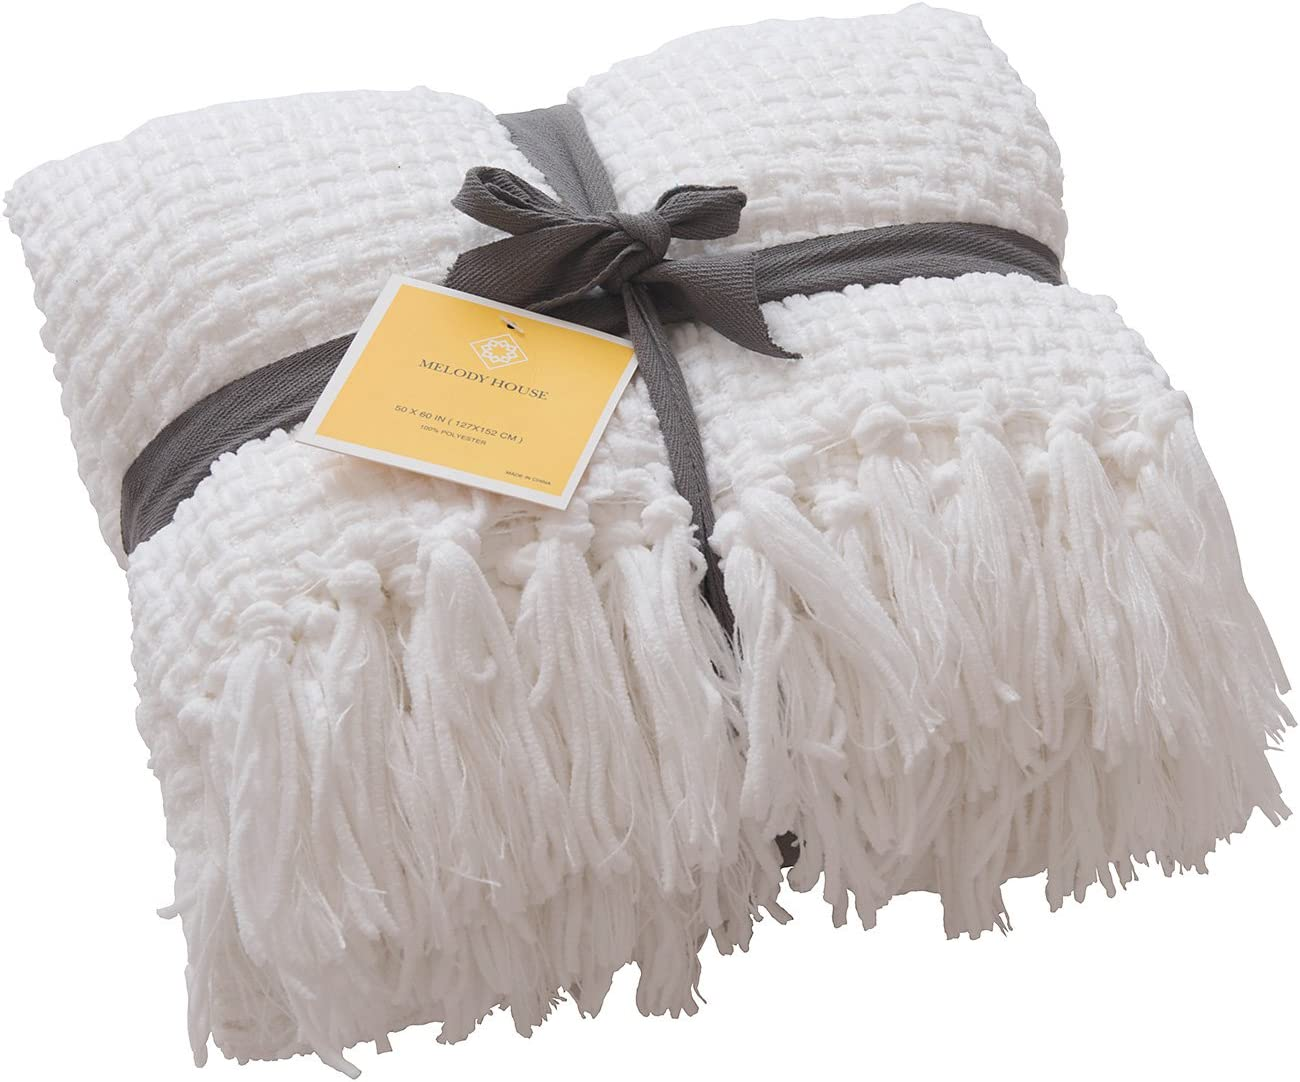 Melody House Super Soft Woven Plaid Pattern Throw, Decorative Throw Blanket with Tassels, 50x60, Bright White